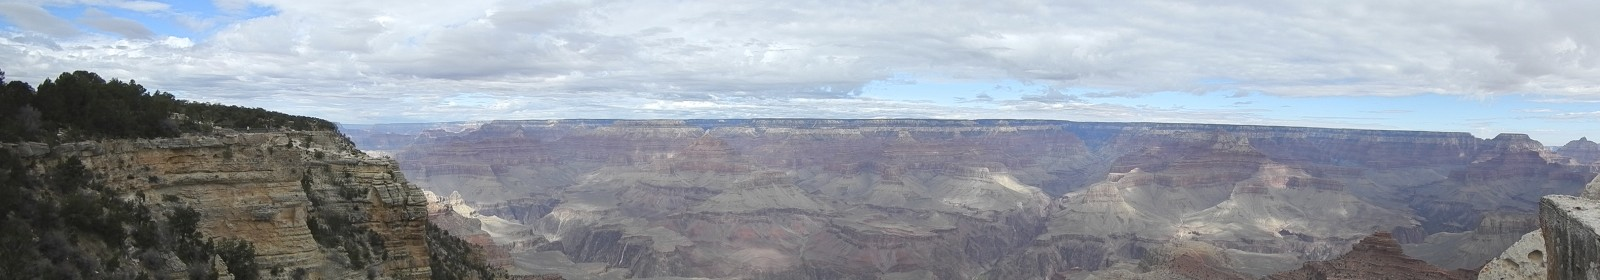 The Panorama of the Canyon's South Rim